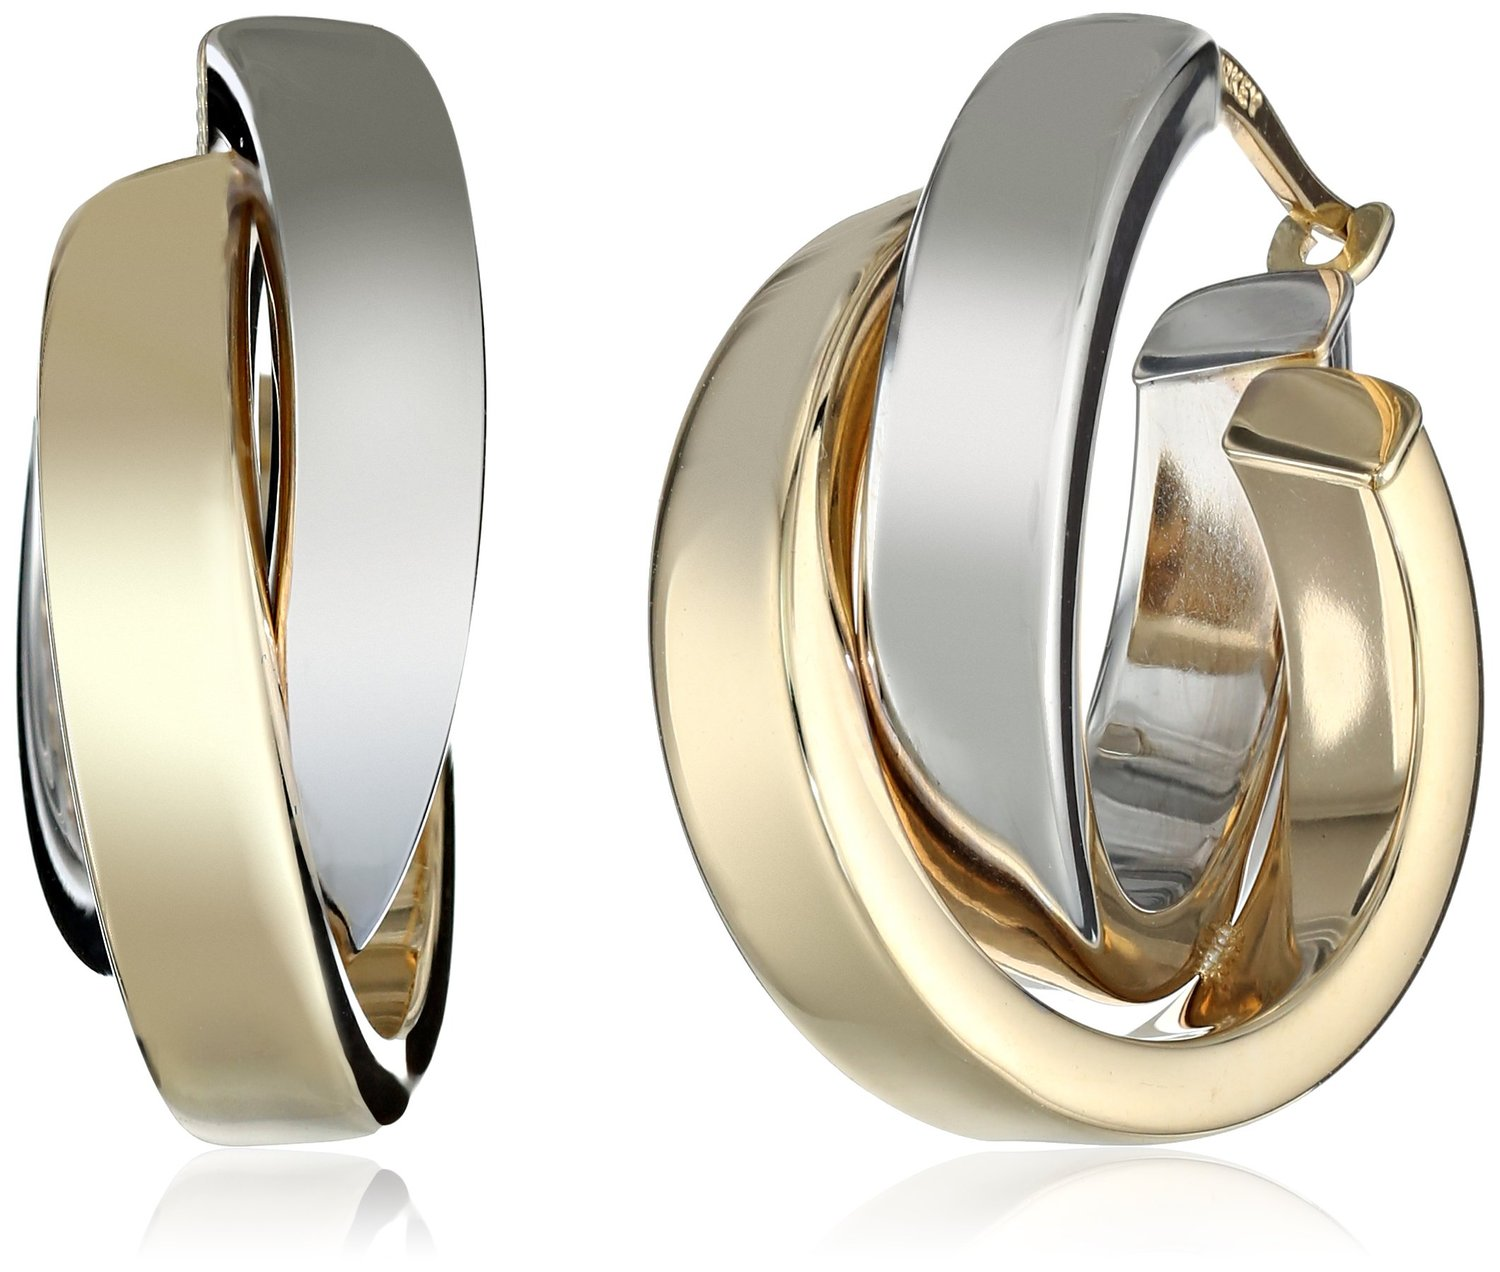 Duragold 14k Yellow White Or Two Tone Gold Satin And Polished Crossover Hoop Earrings Visuall Co